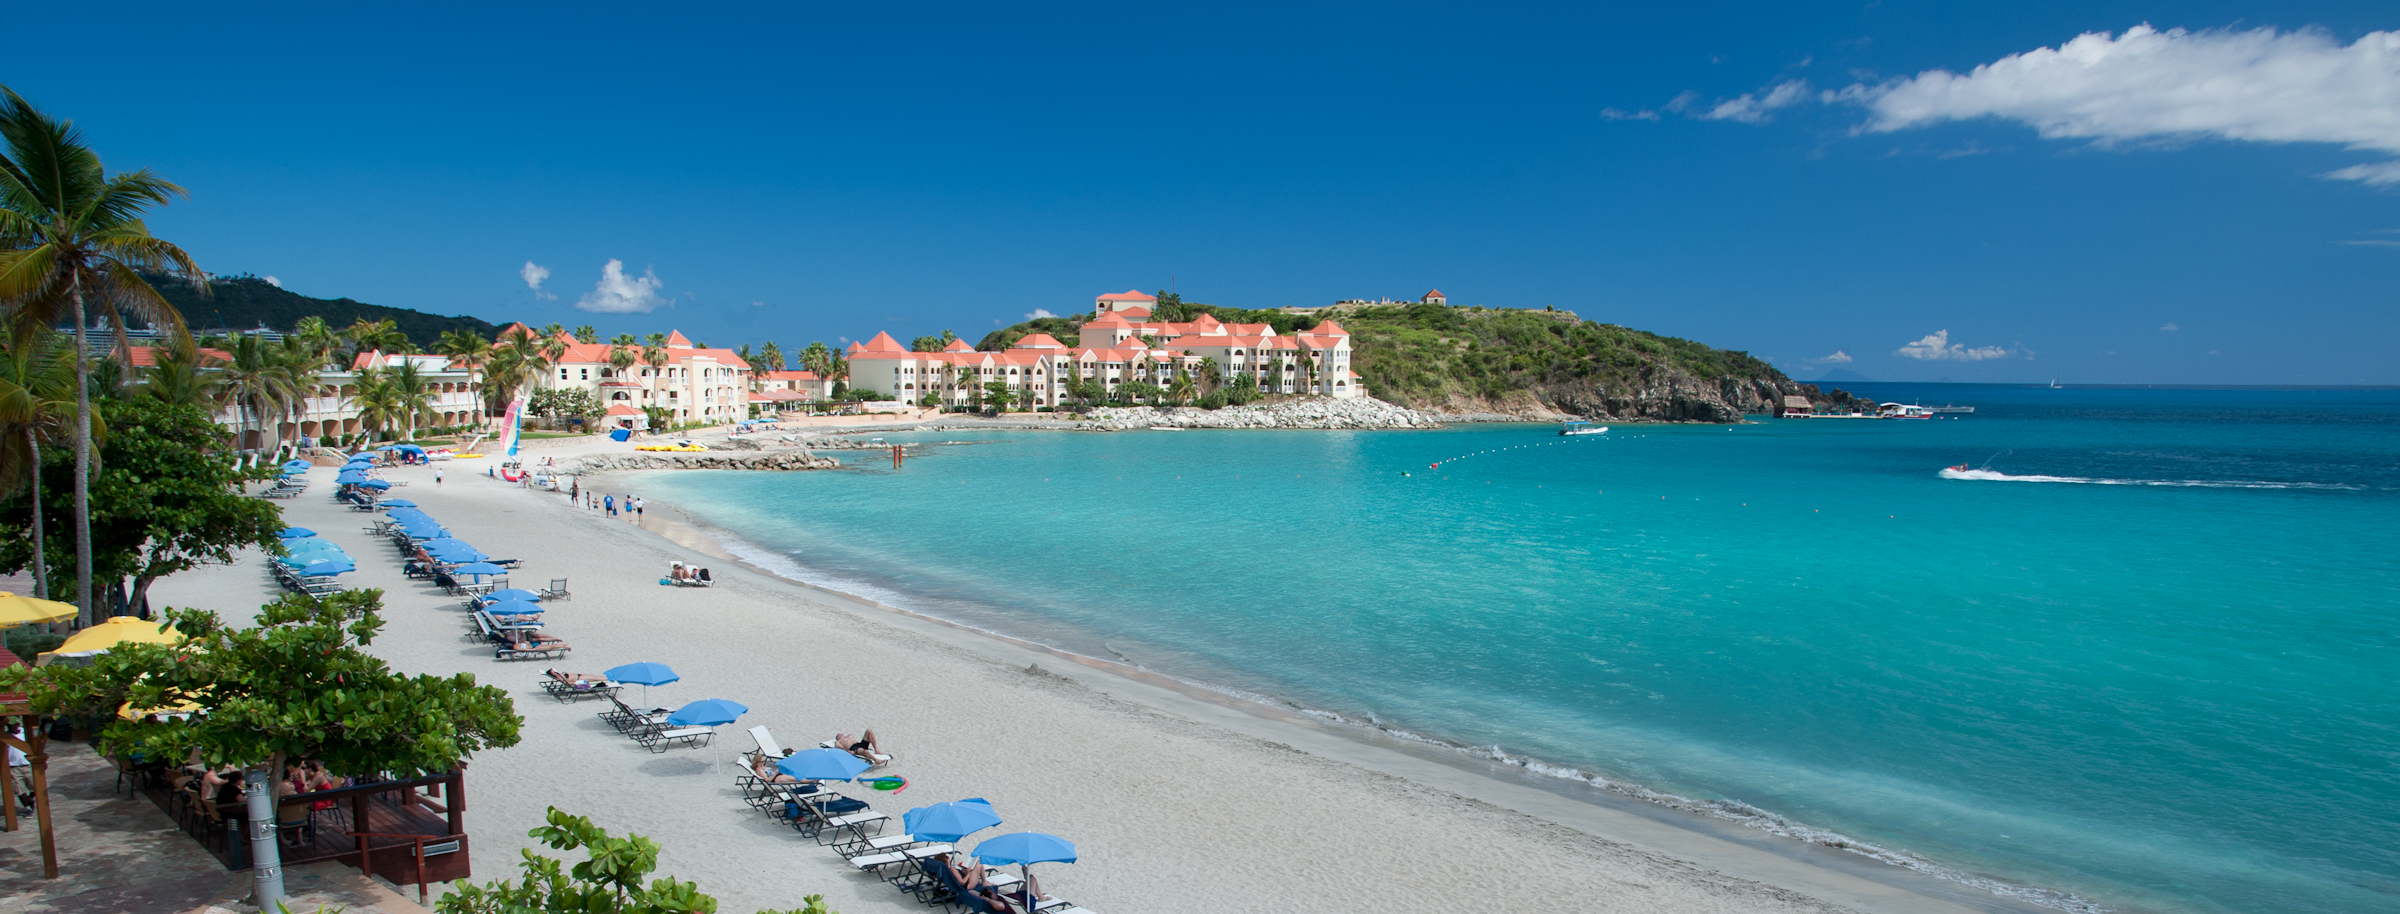 Top Family Resorts On St Maarten Plan Your Trip To St